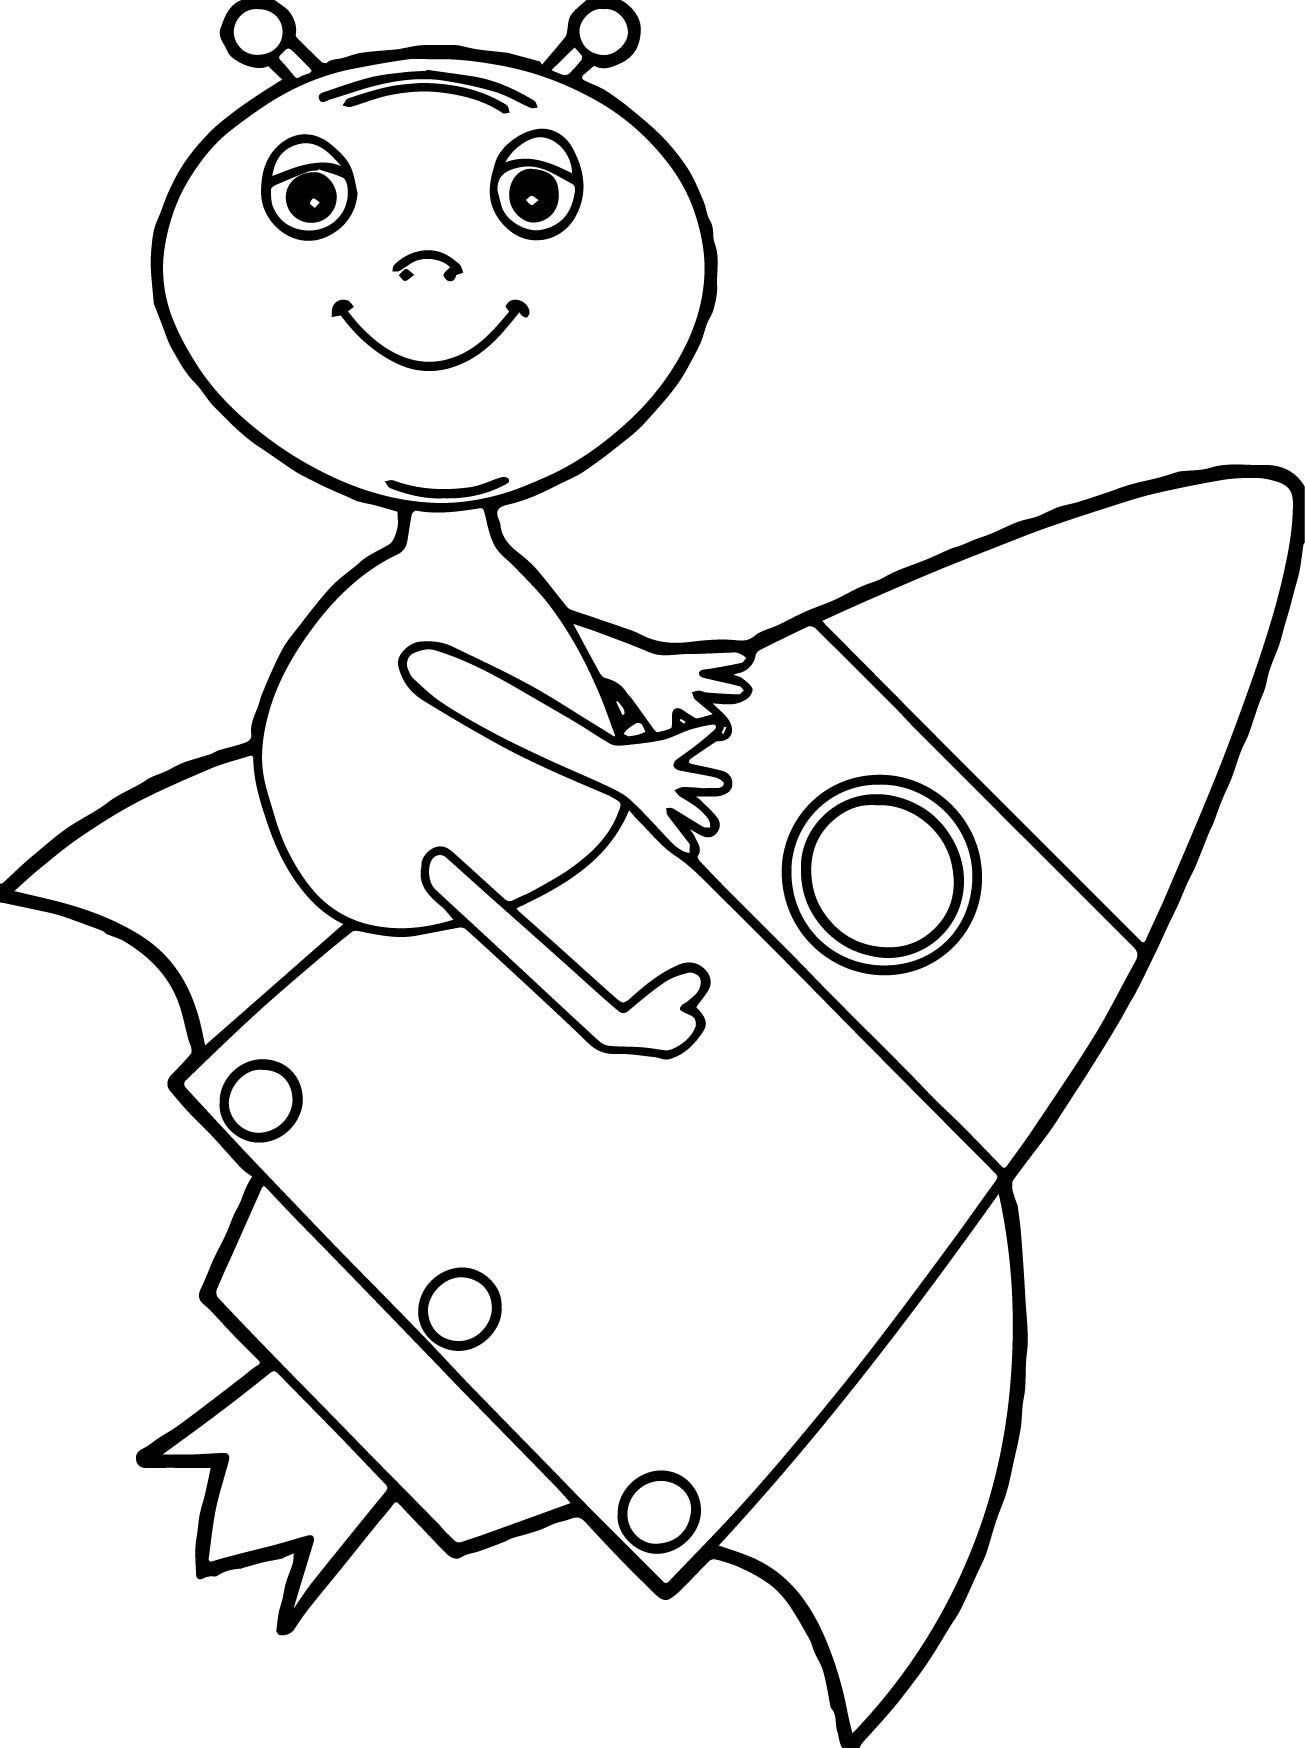 cool Alien Drawing Rocket Coloring Page | wecoloringpage | Pinterest ...